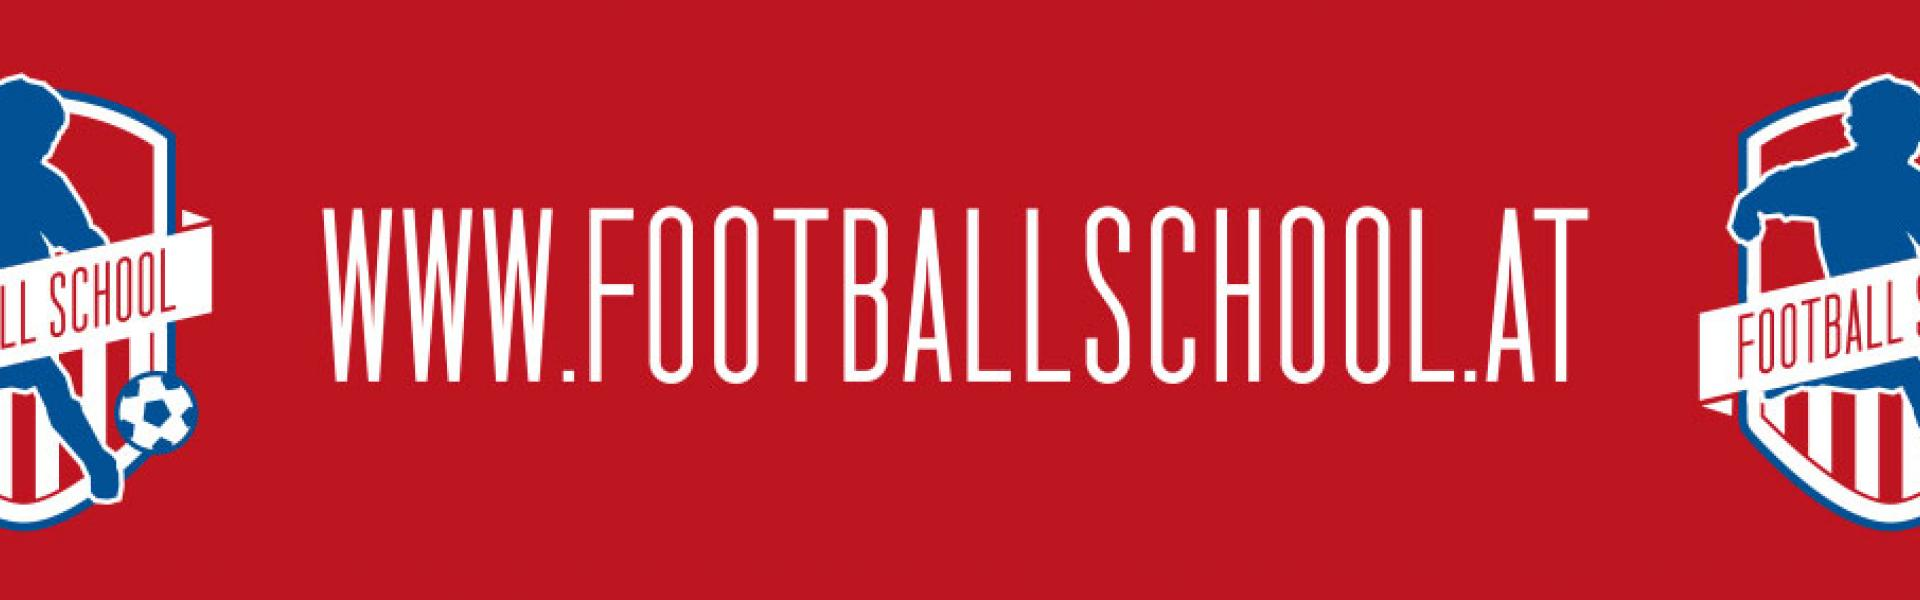 Football School Semesterkurse cover